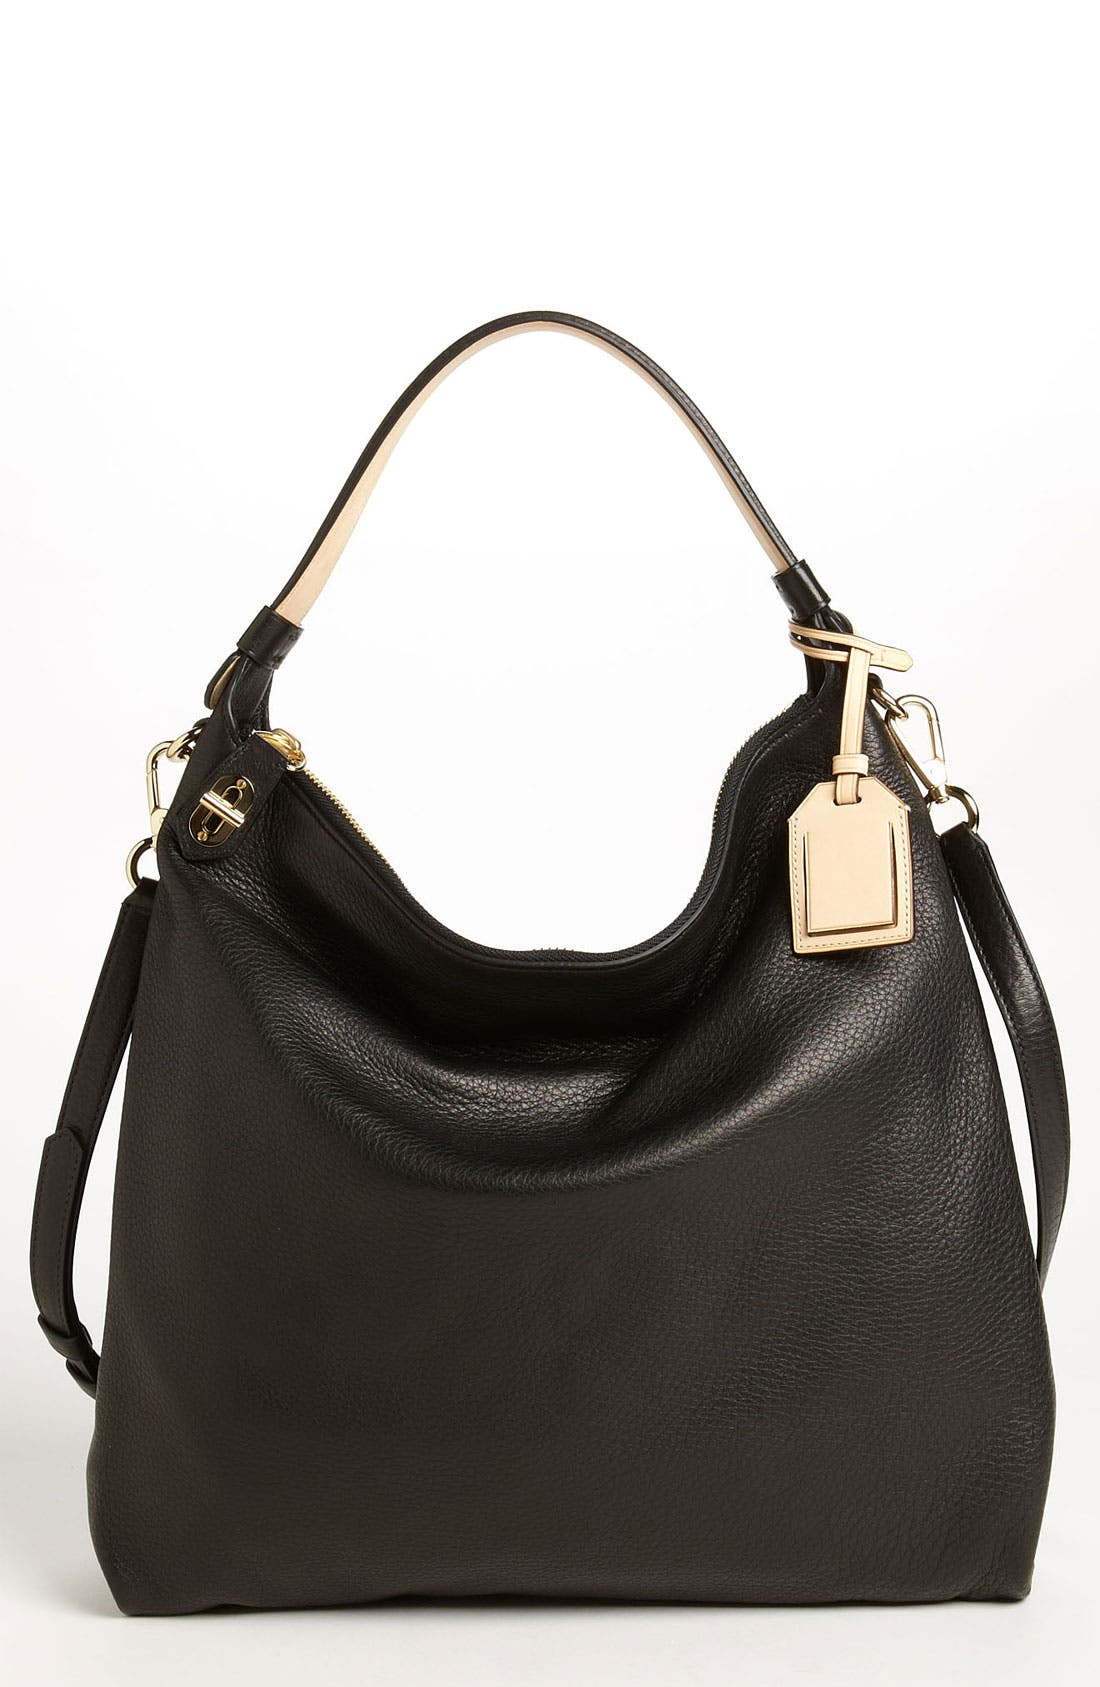 Main Image - Reed Krakoff 'Standard' Leather Hobo